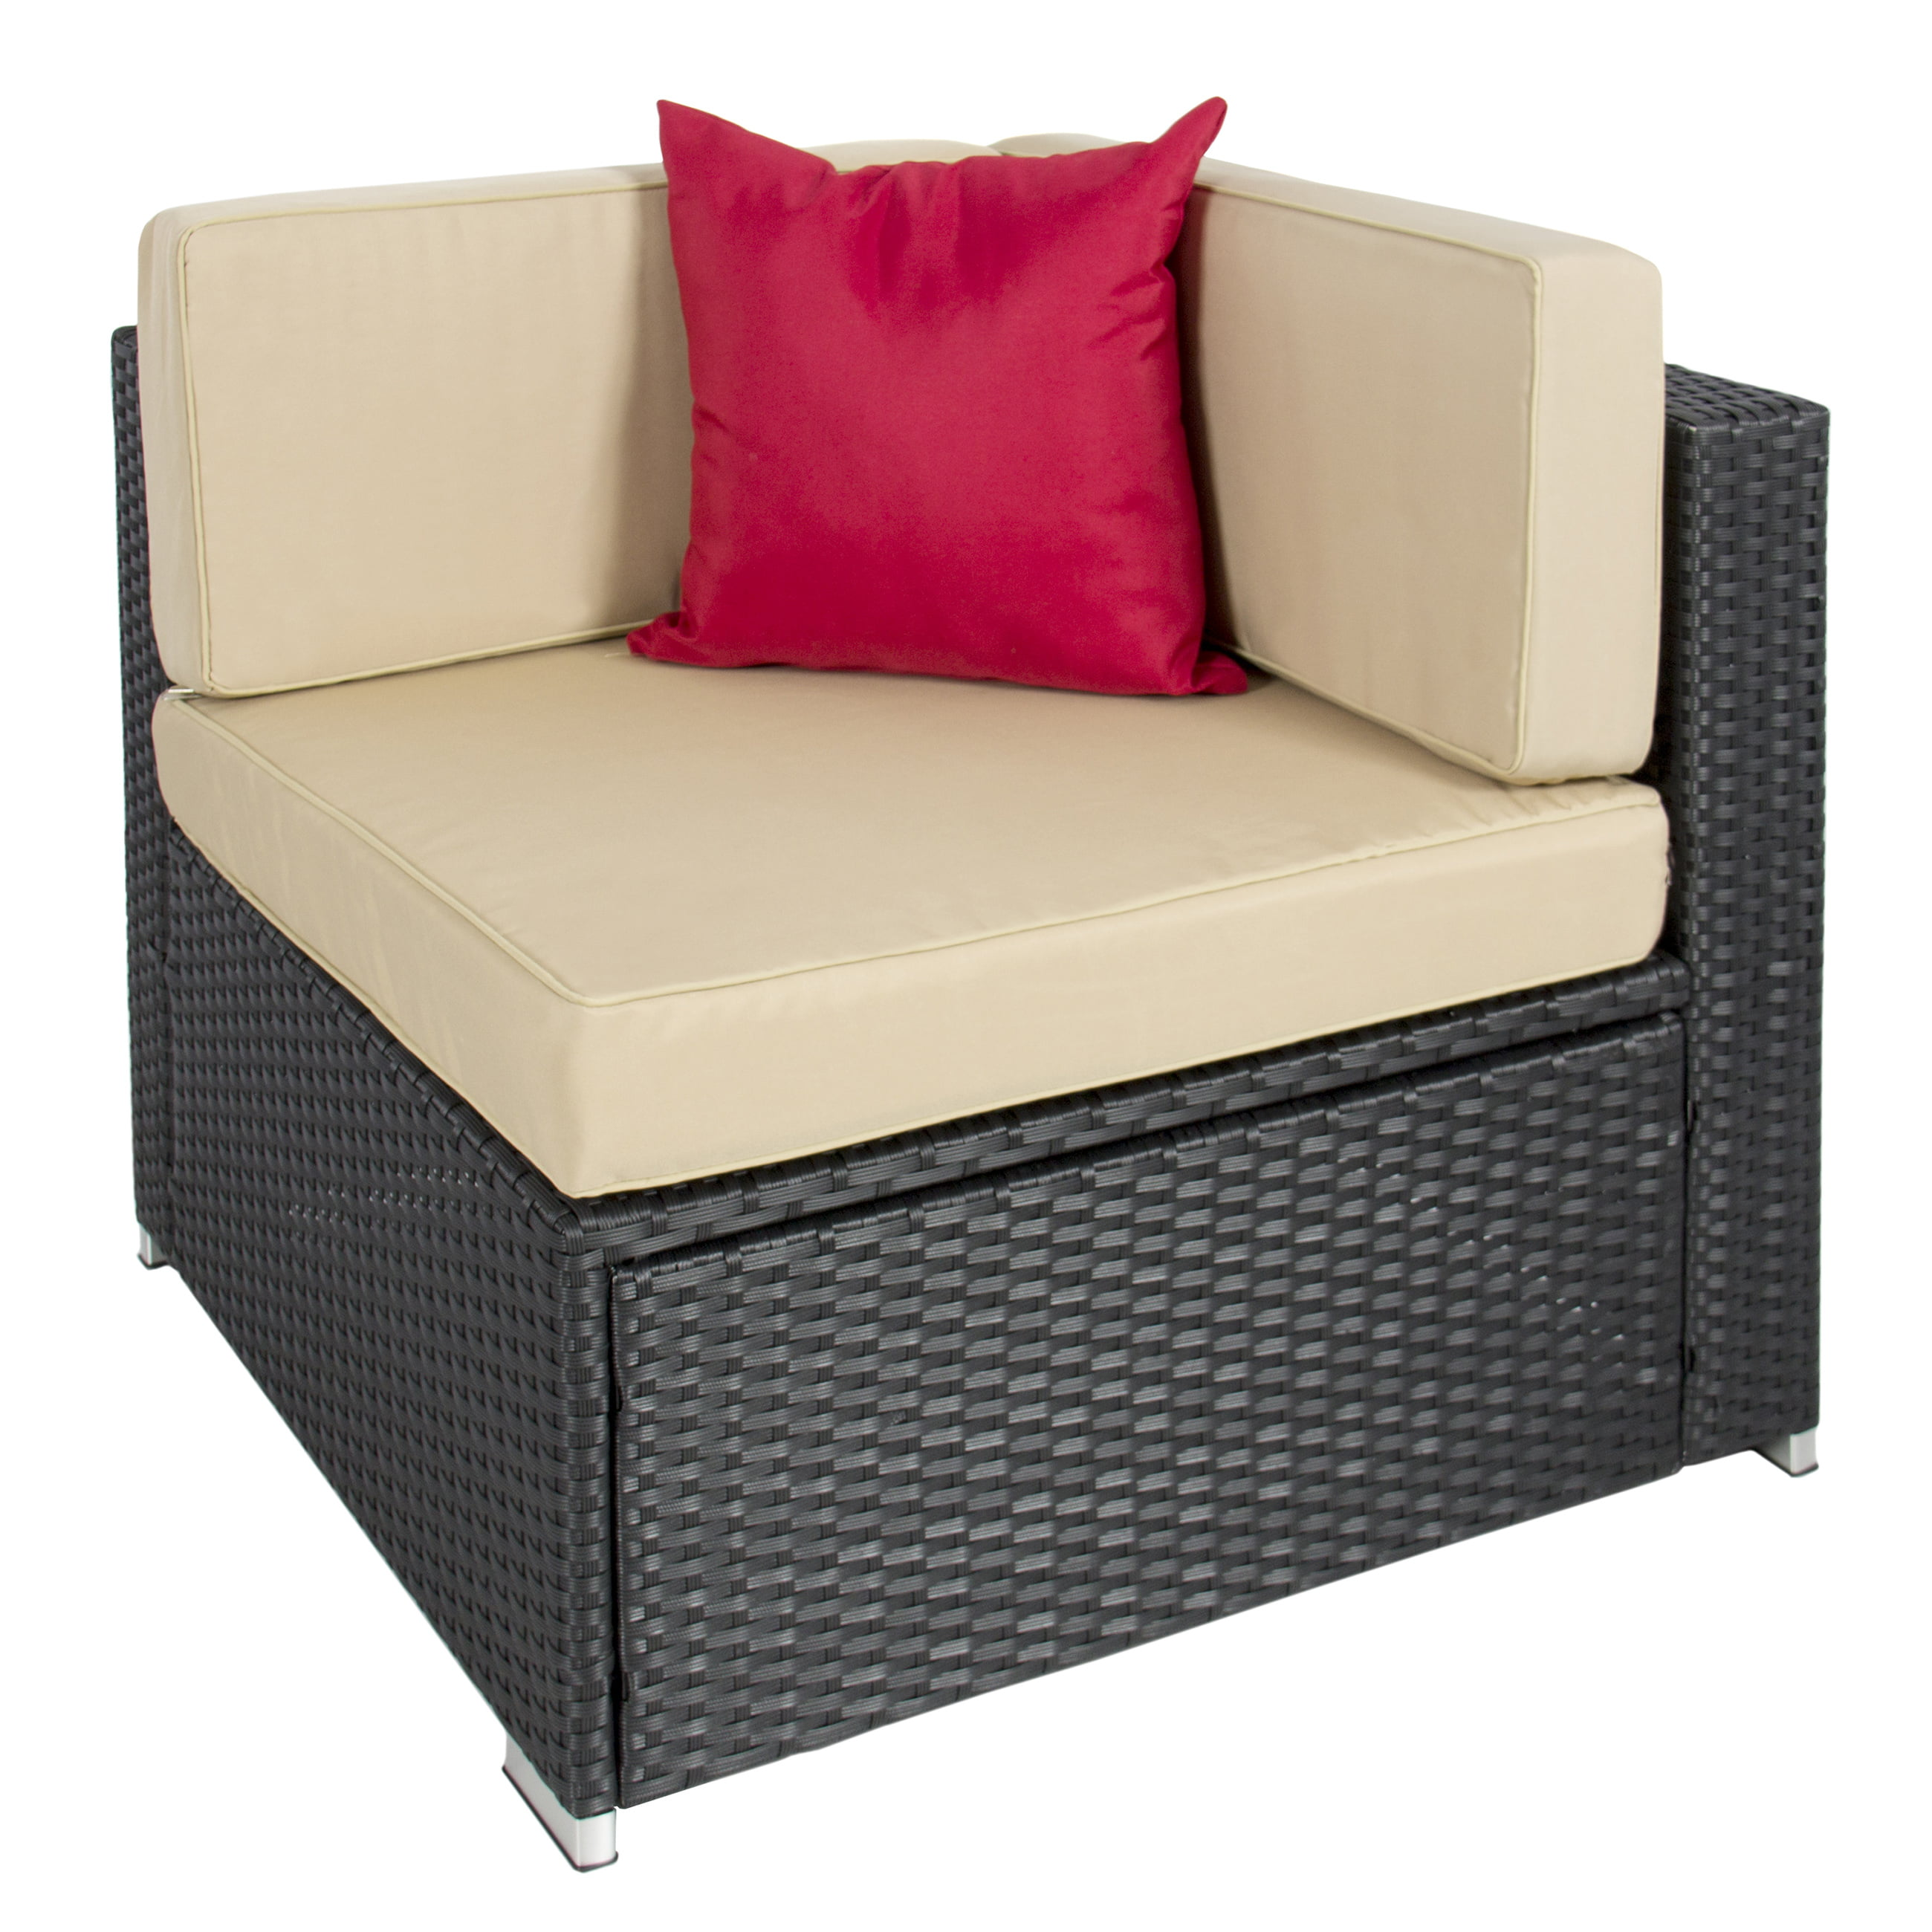 Best Choice Products 7pc Outdoor Patio Garden Wicker Furniture Rattan Sofa  Set   Walmart.com